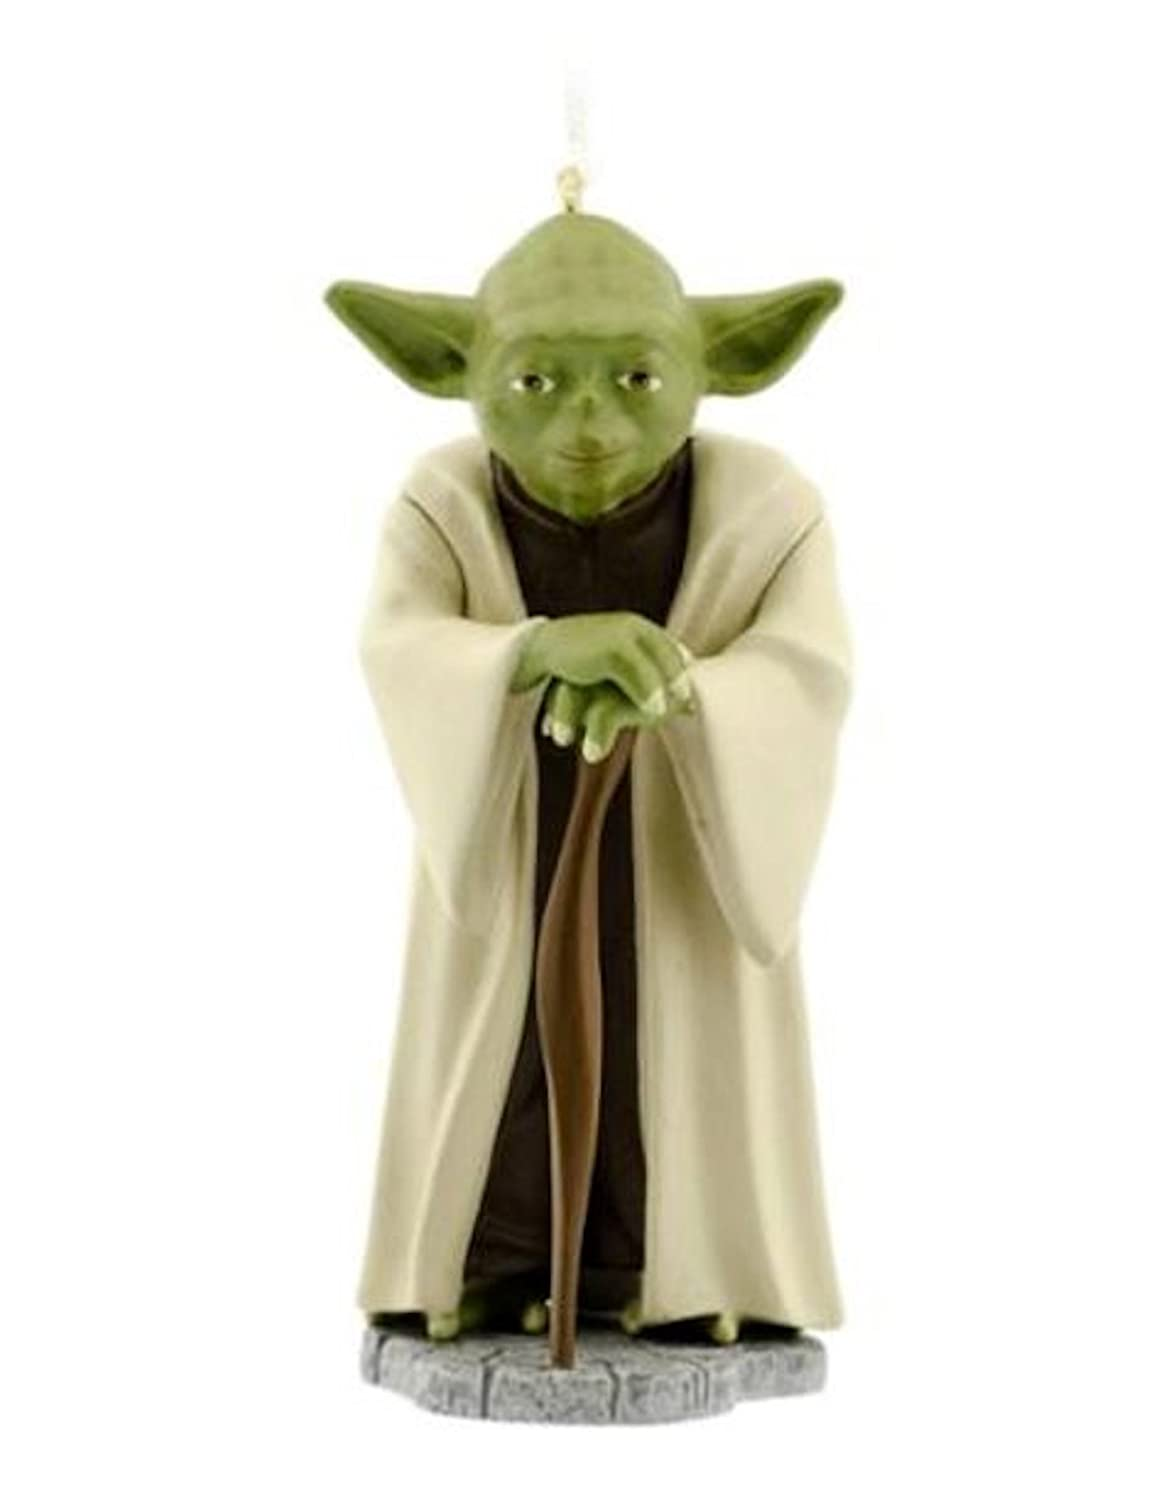 Hallmark Yoda Star Wars Christmas Tree Ornament